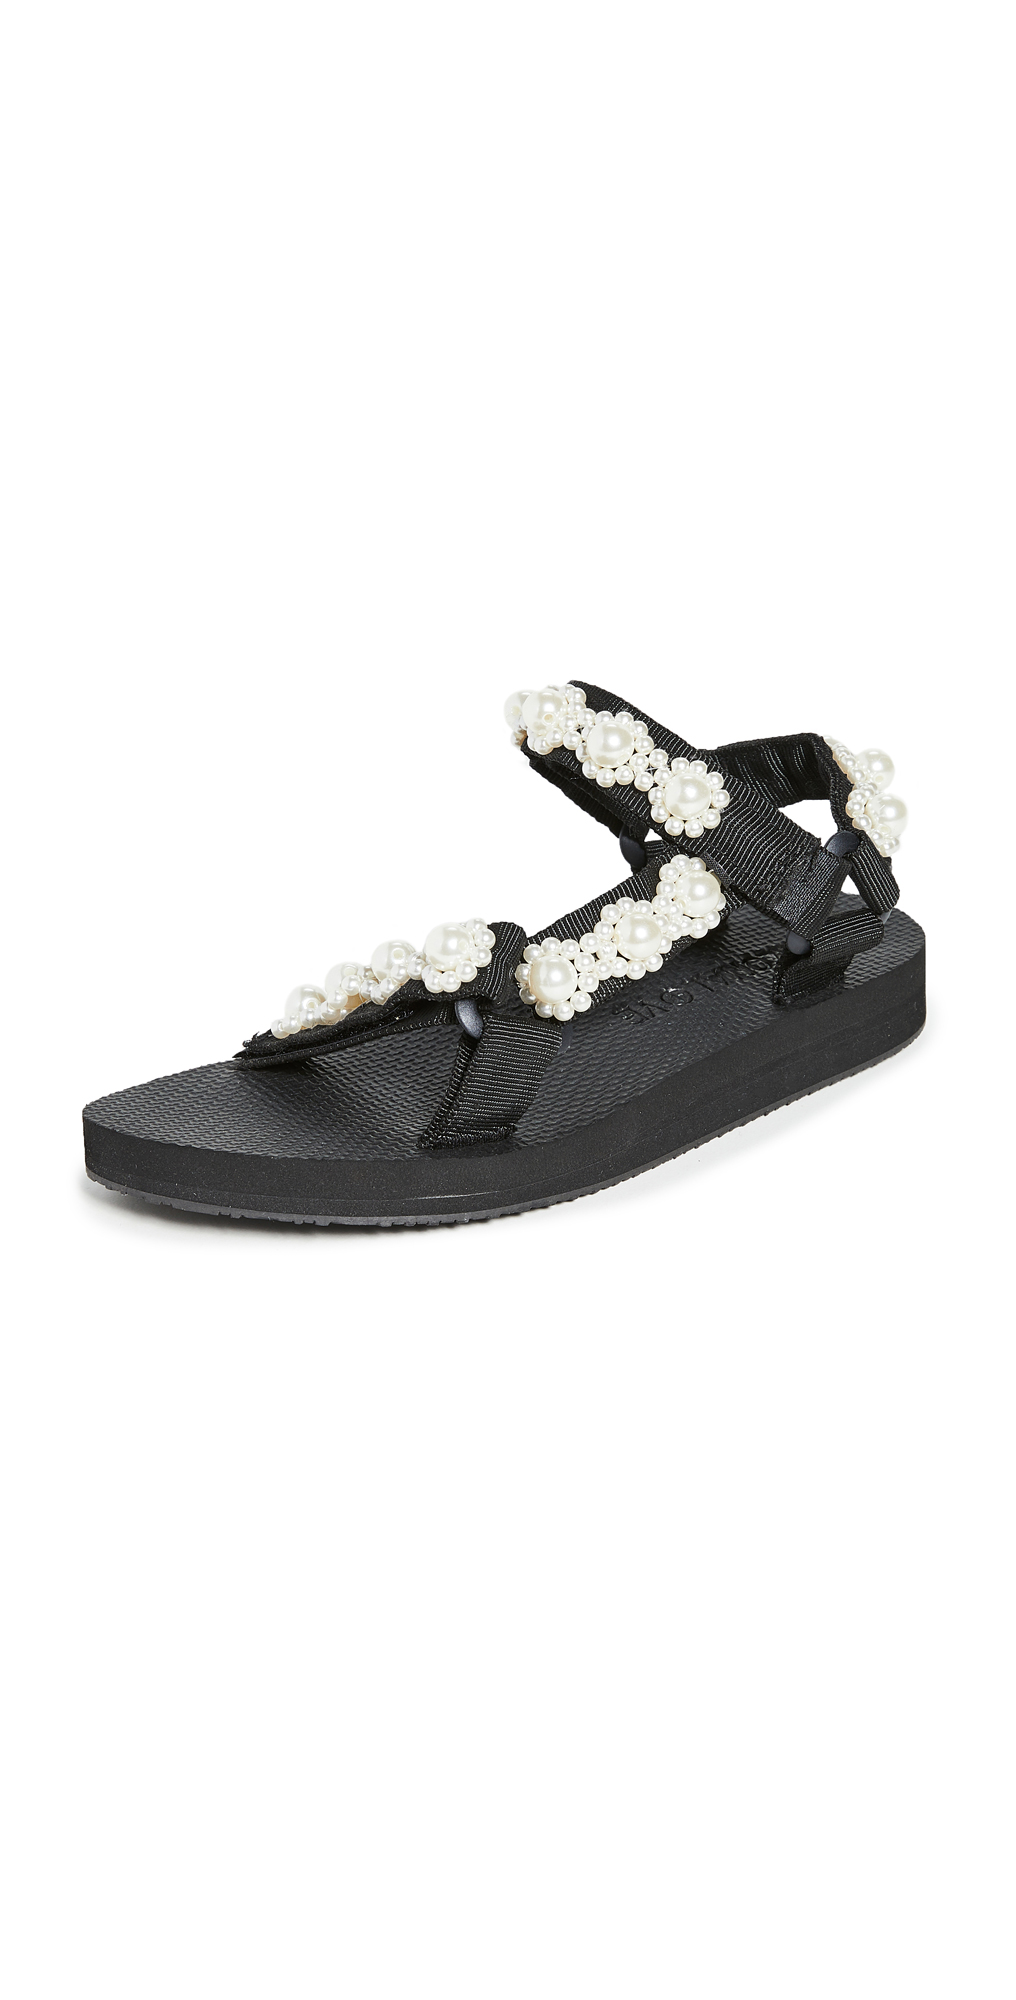 Arizona Love Trekky Chic Sandals